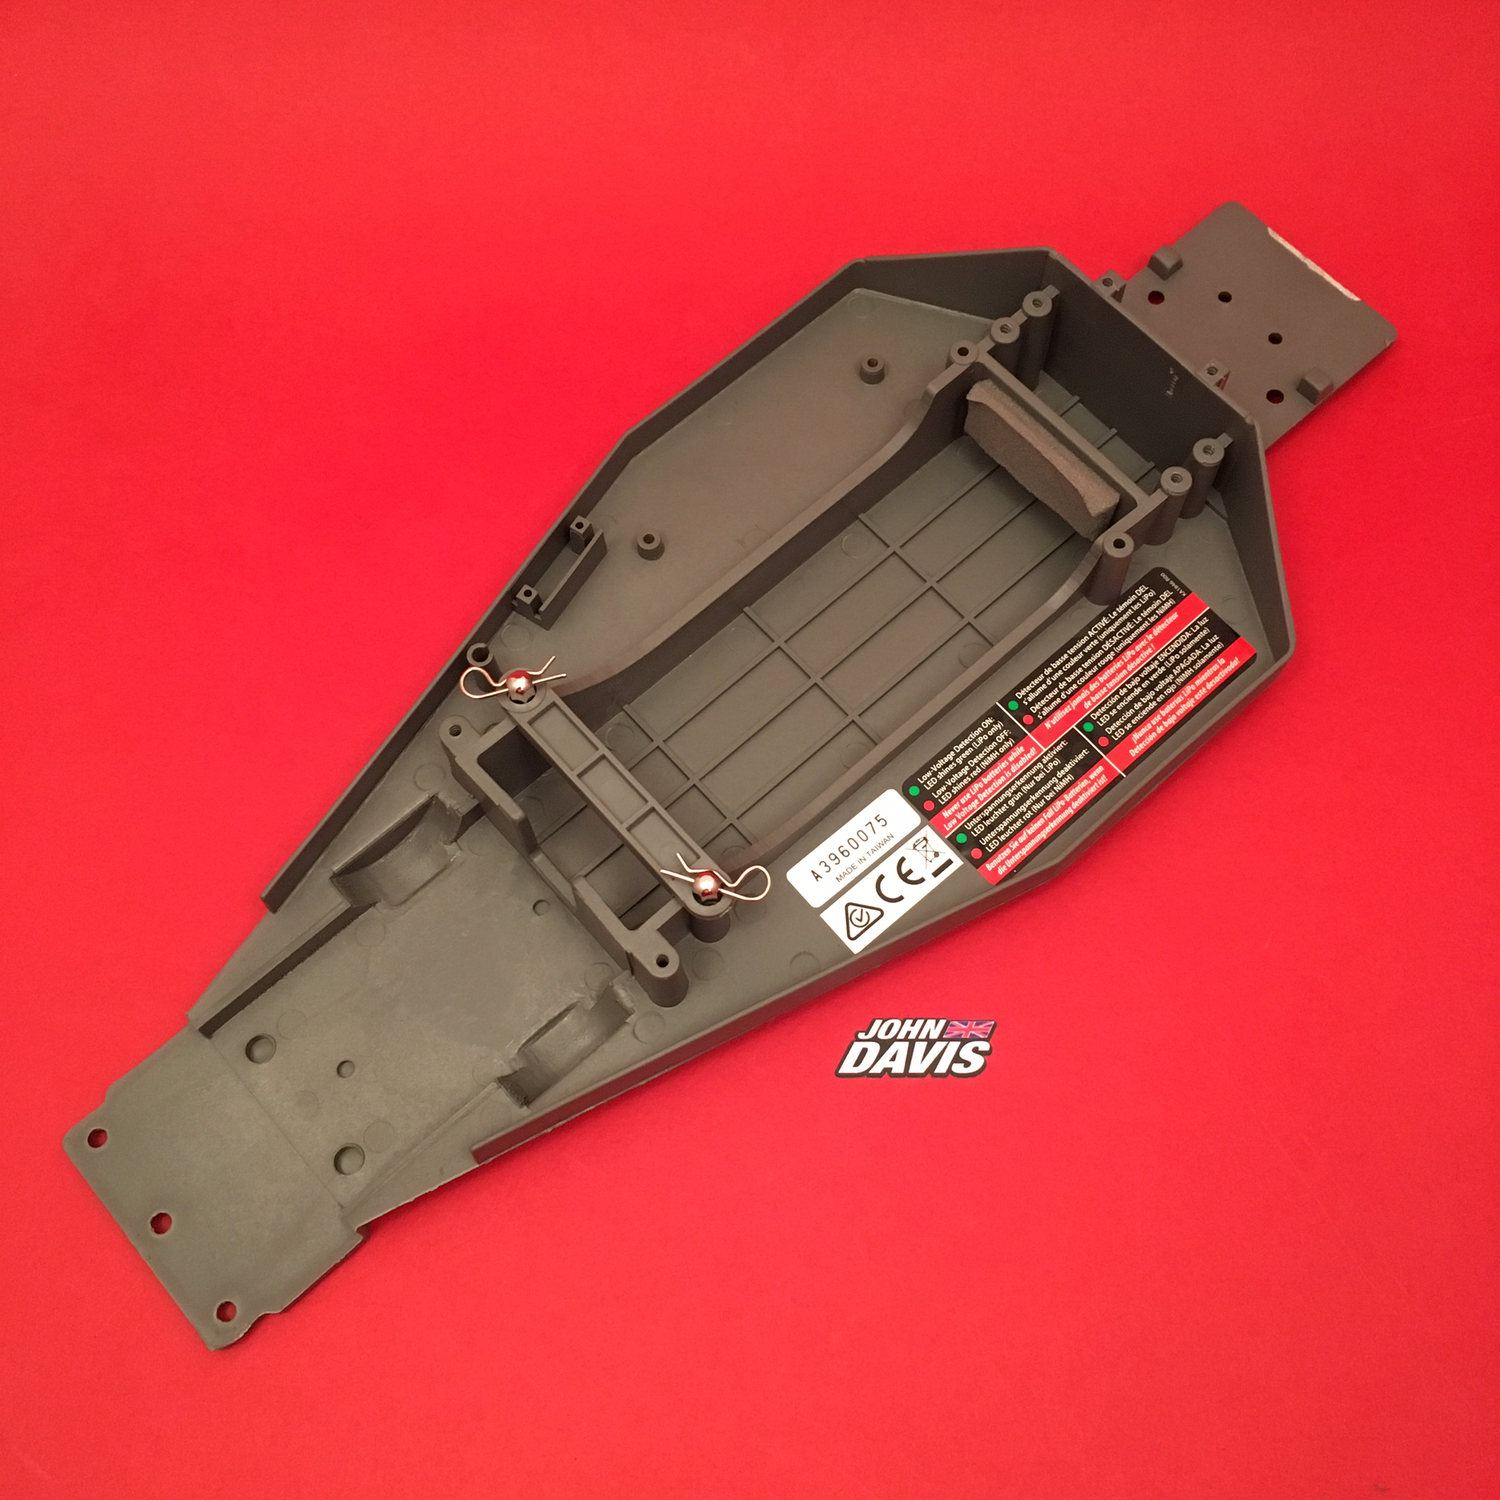 Lower Chassis (grey), Battery Hold-Down Plate (grey), Metal Posts, Body Clips